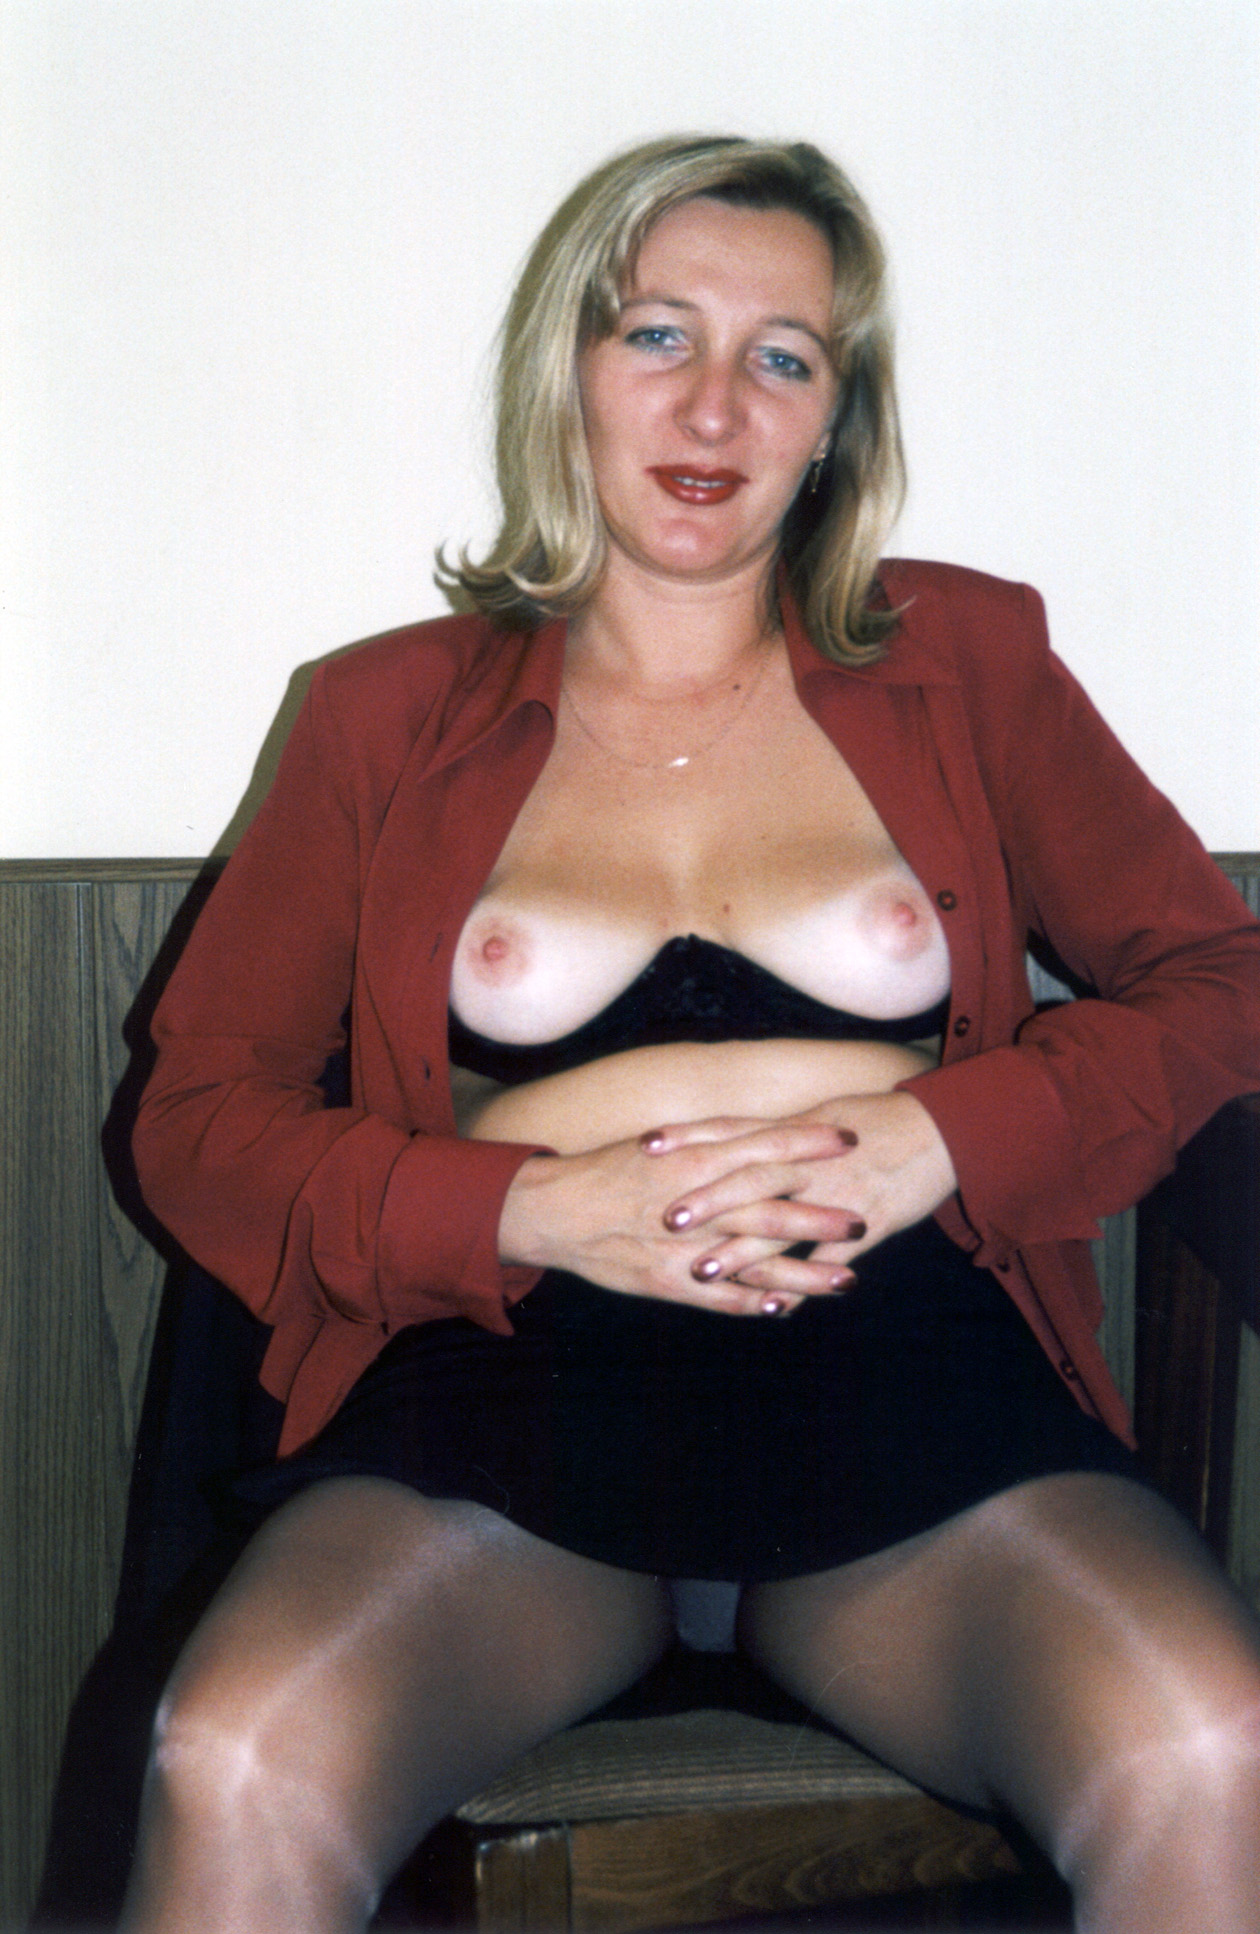 Free amatuer adult pictures